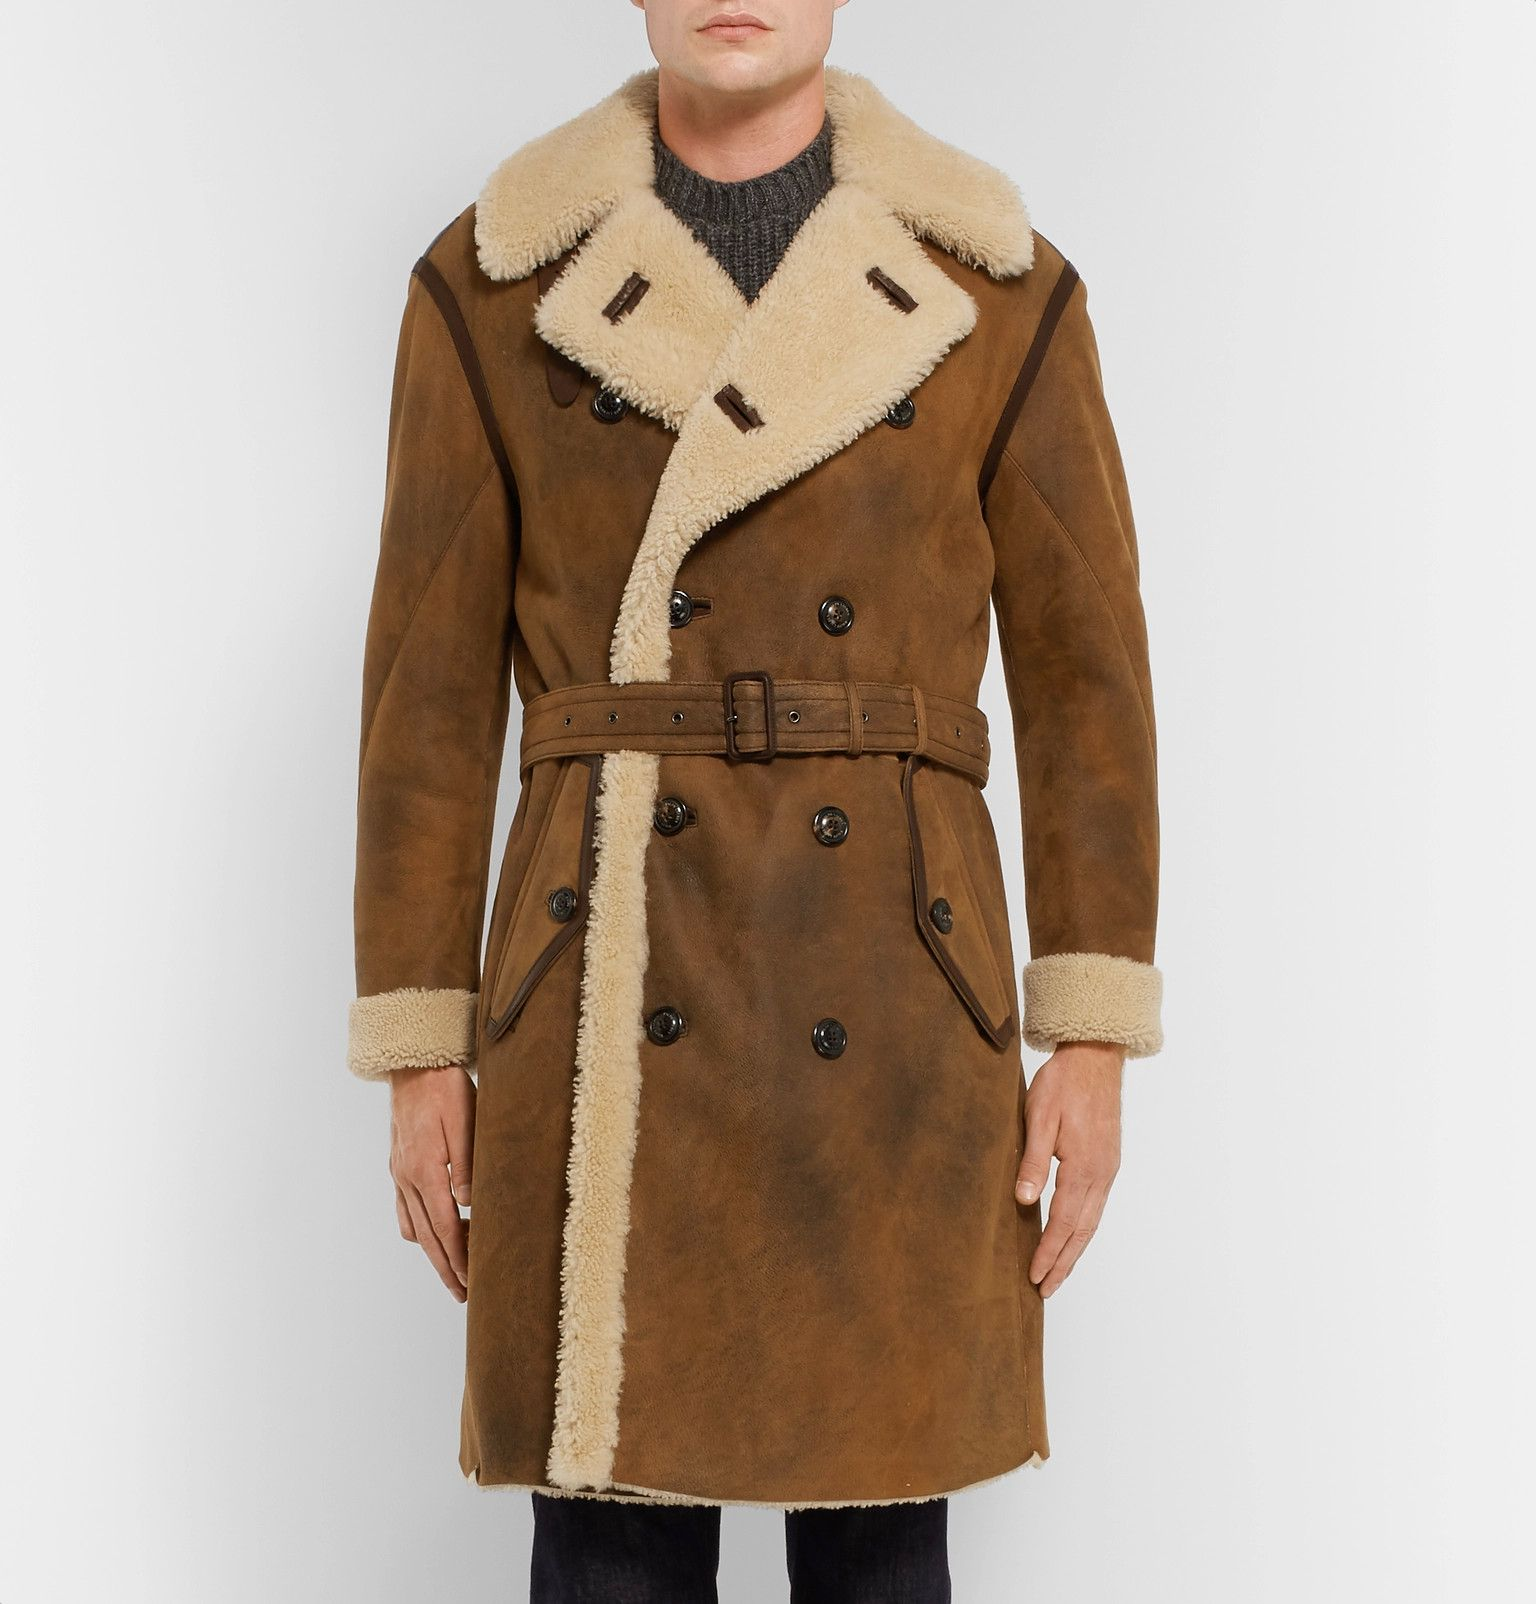 Coats and Jackets for Men | Designer Menswear